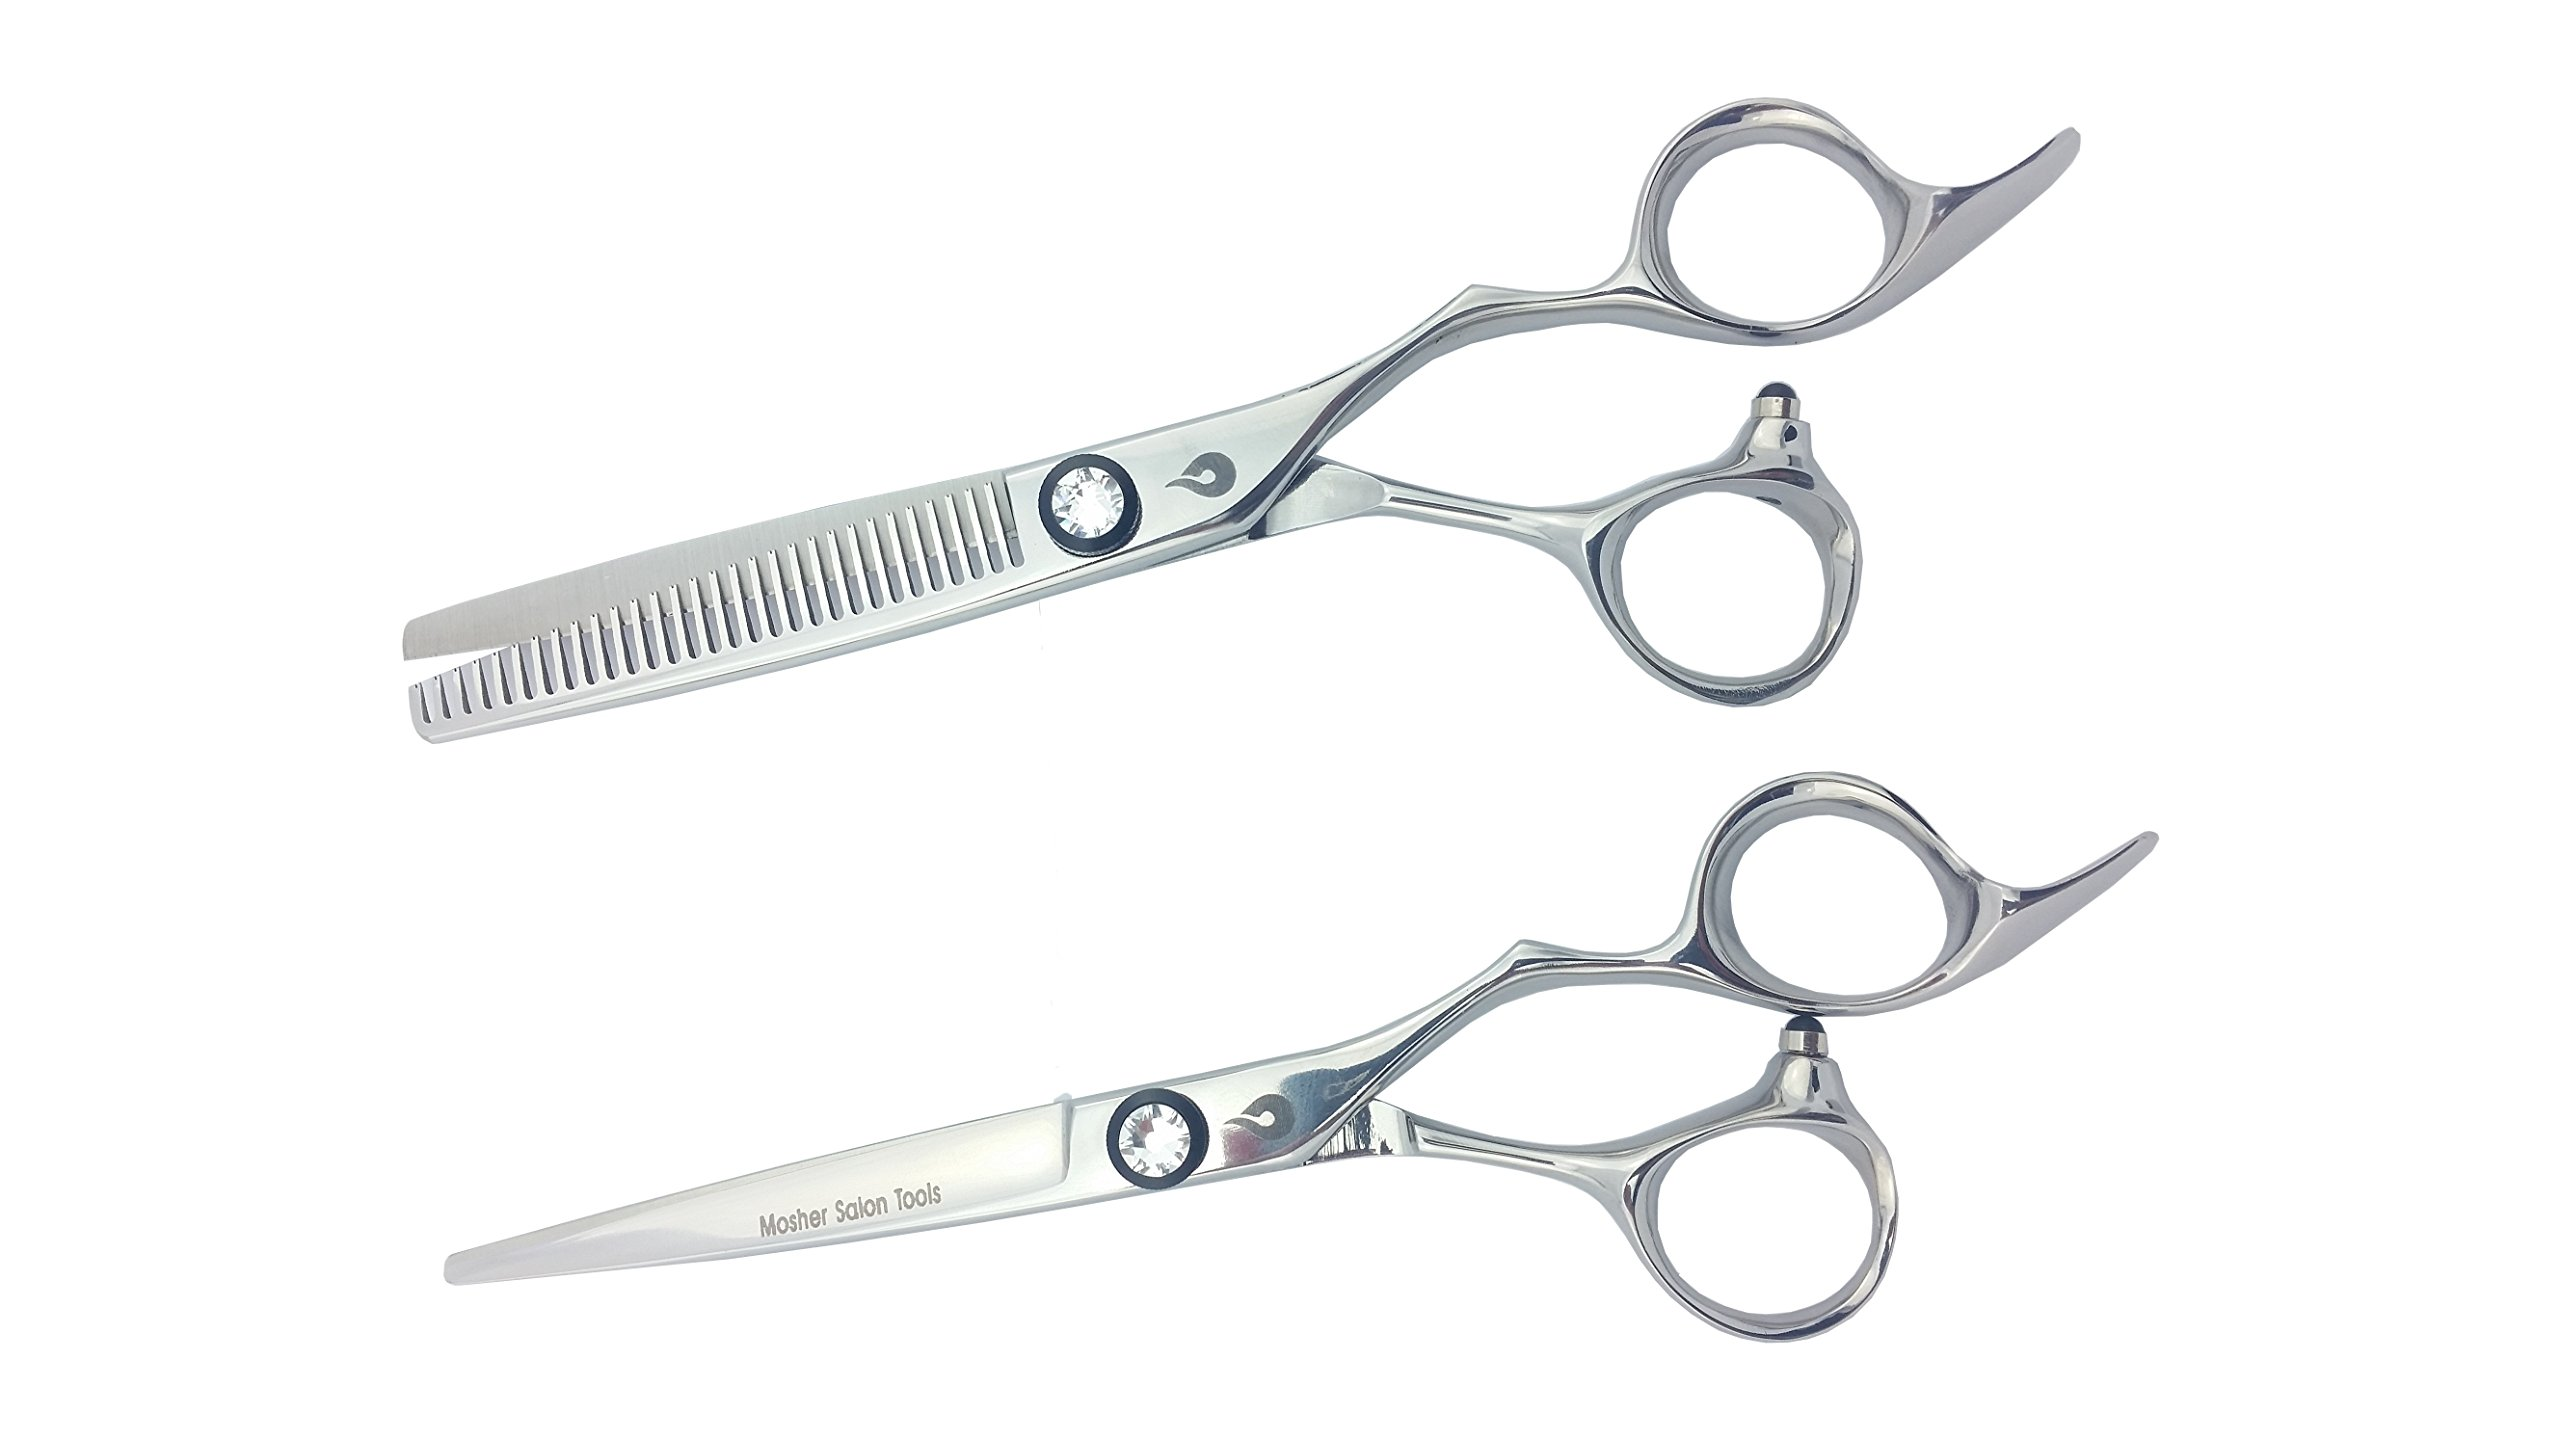 Mosher Salon Tools Professional Diamond Series High End Japanese Steel Handmade Hair Cutting Scissors/Shears by Mosher Salon Tools